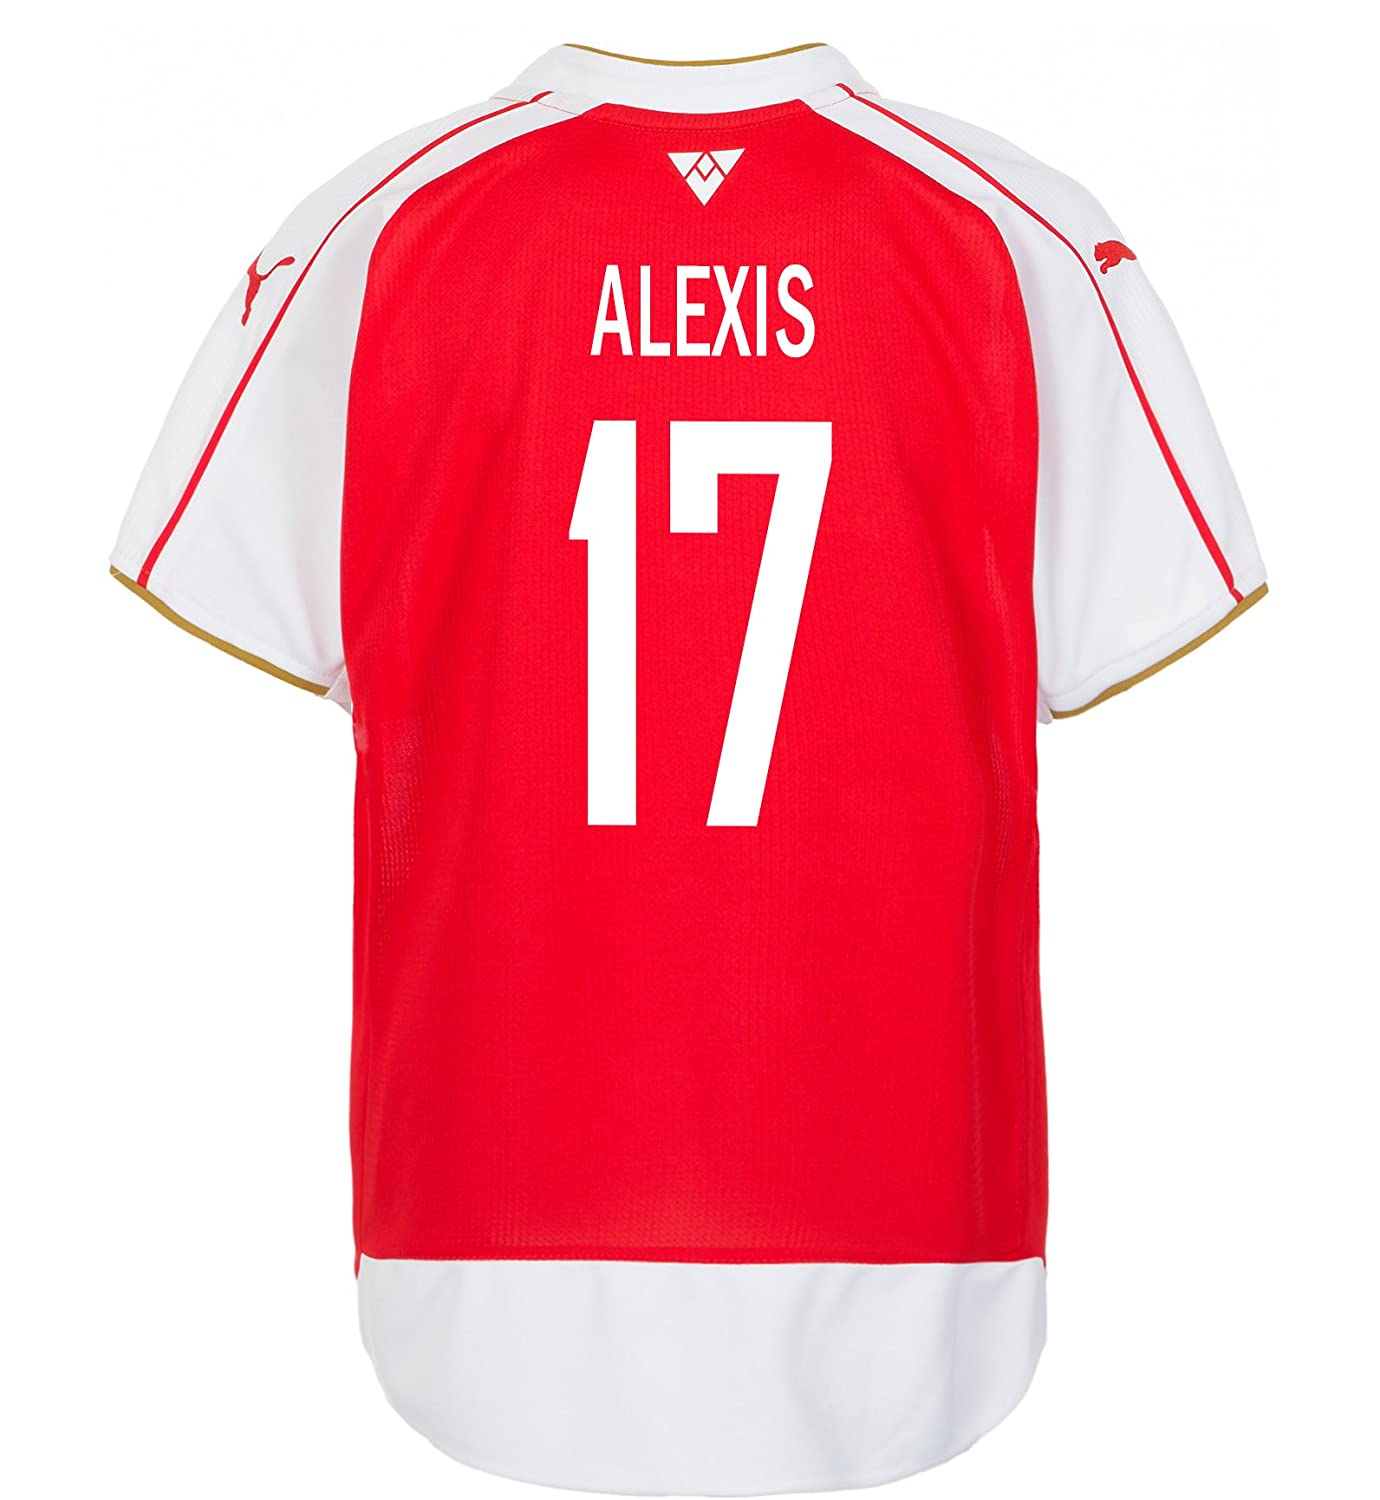 45d92c9eb Amazon.com: PUMA Alexis #17 Arsenal Home Soccer Youth Jersey 2015/2016 Red,  White: Clothing